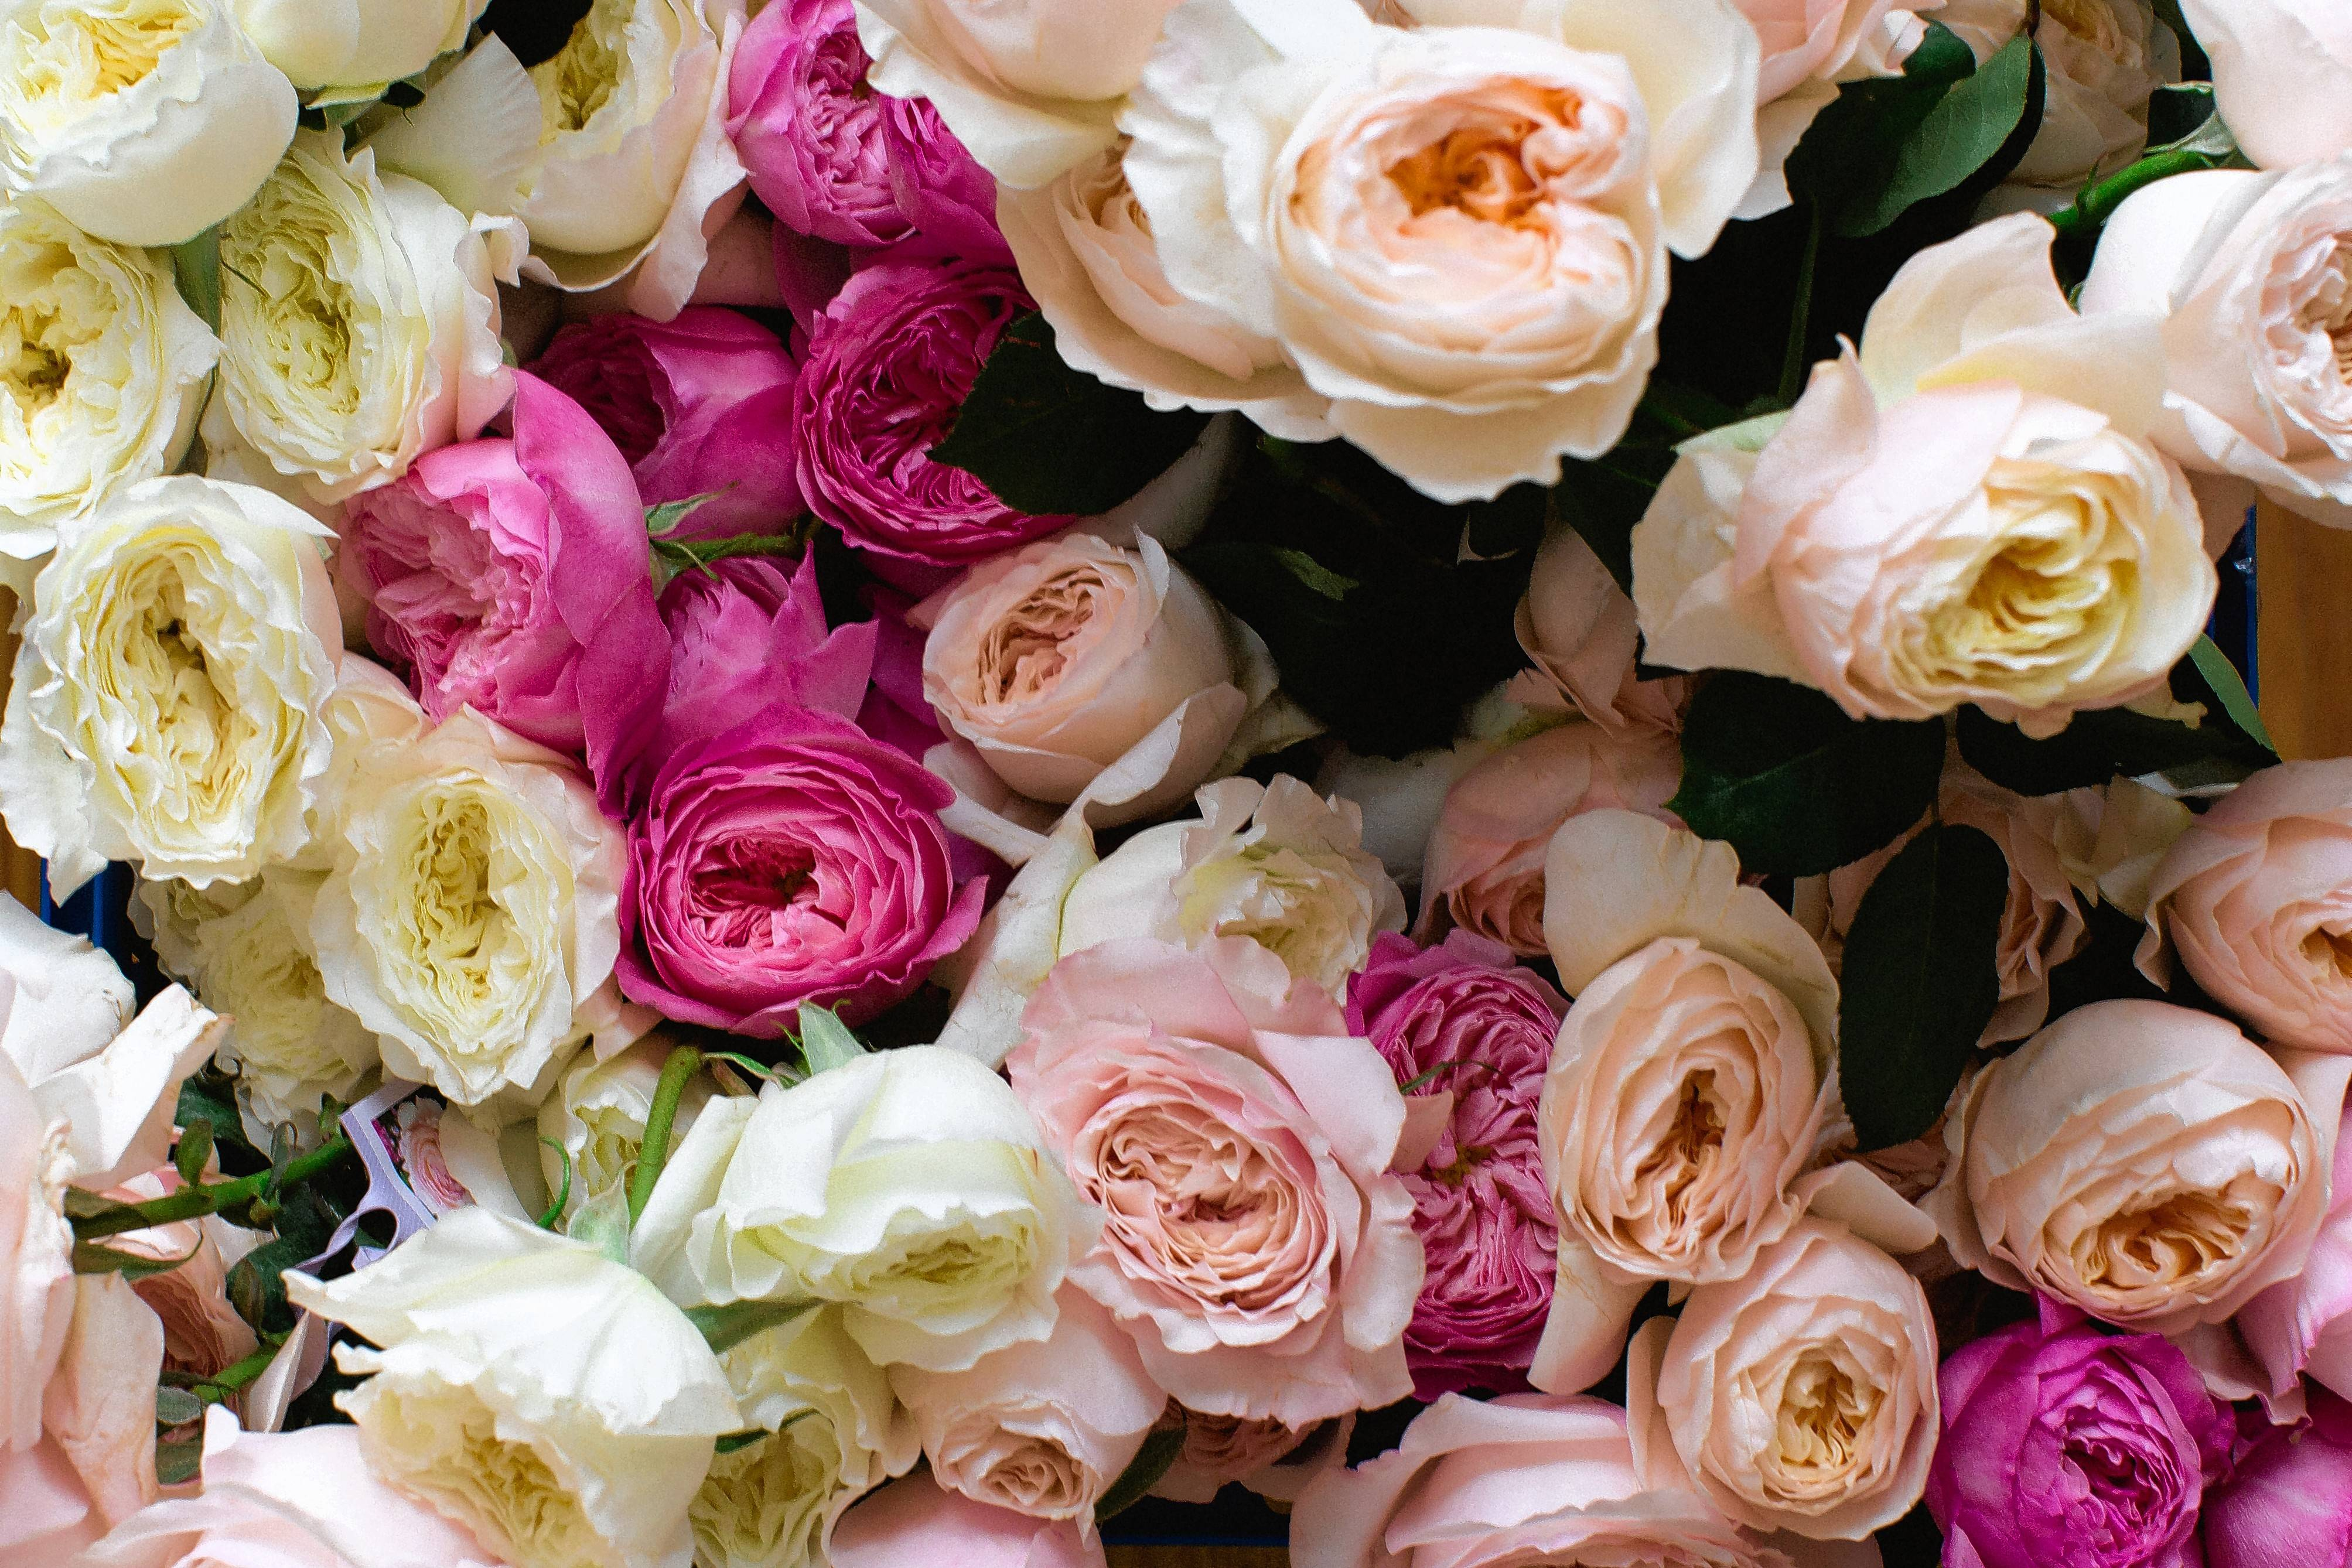 Florists are using high-end garden roses in place of traditional long-stemmed hybrid teas for Valentine's and beyond.